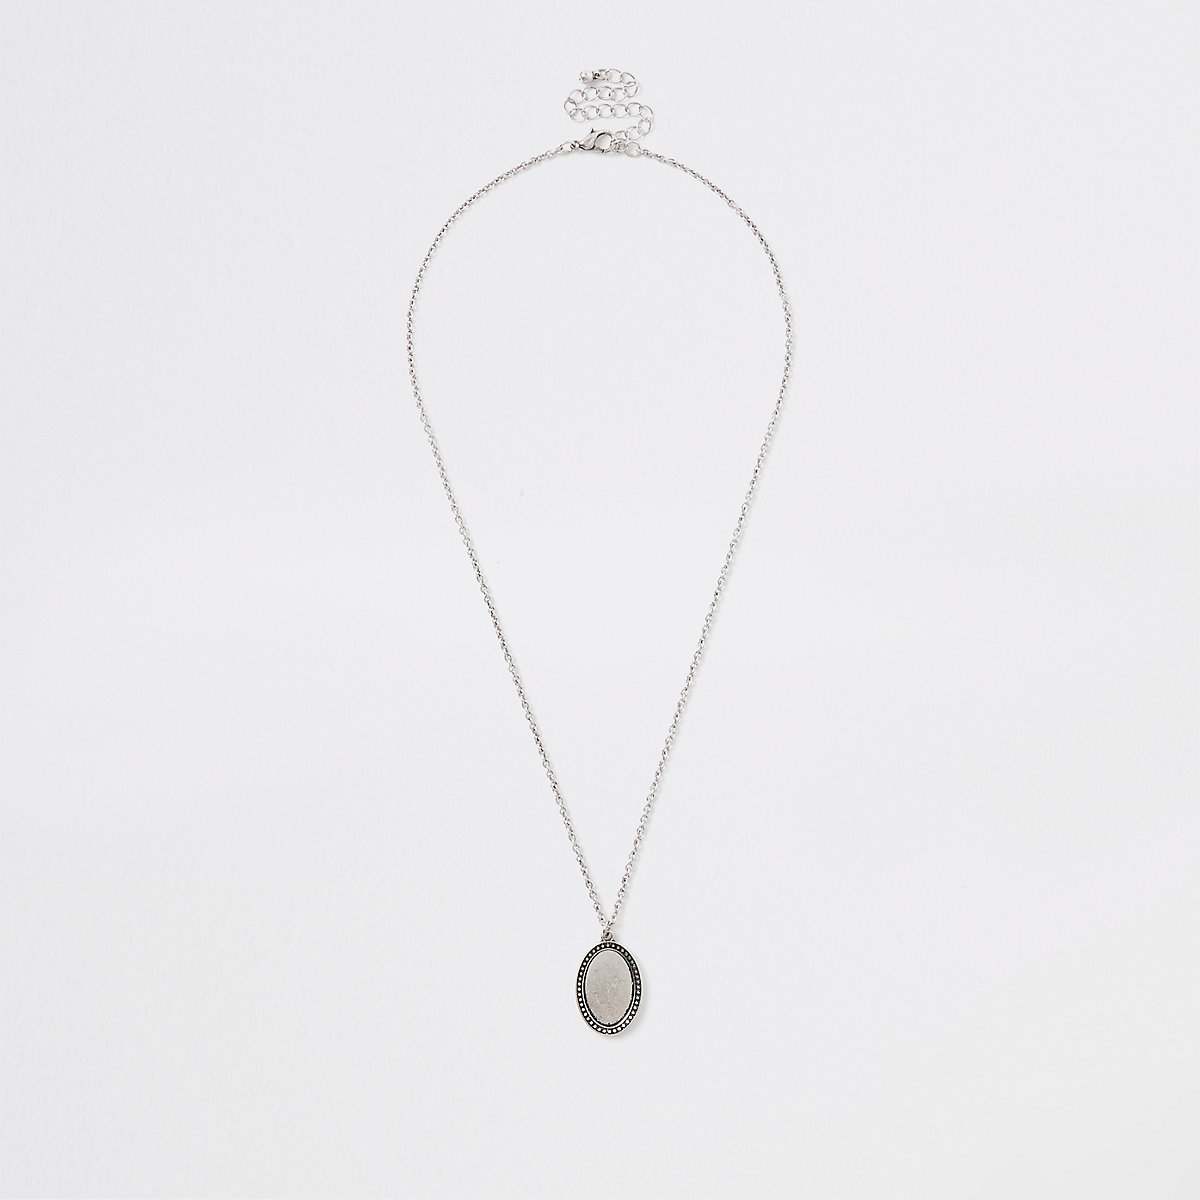 Silver tone oval necklace